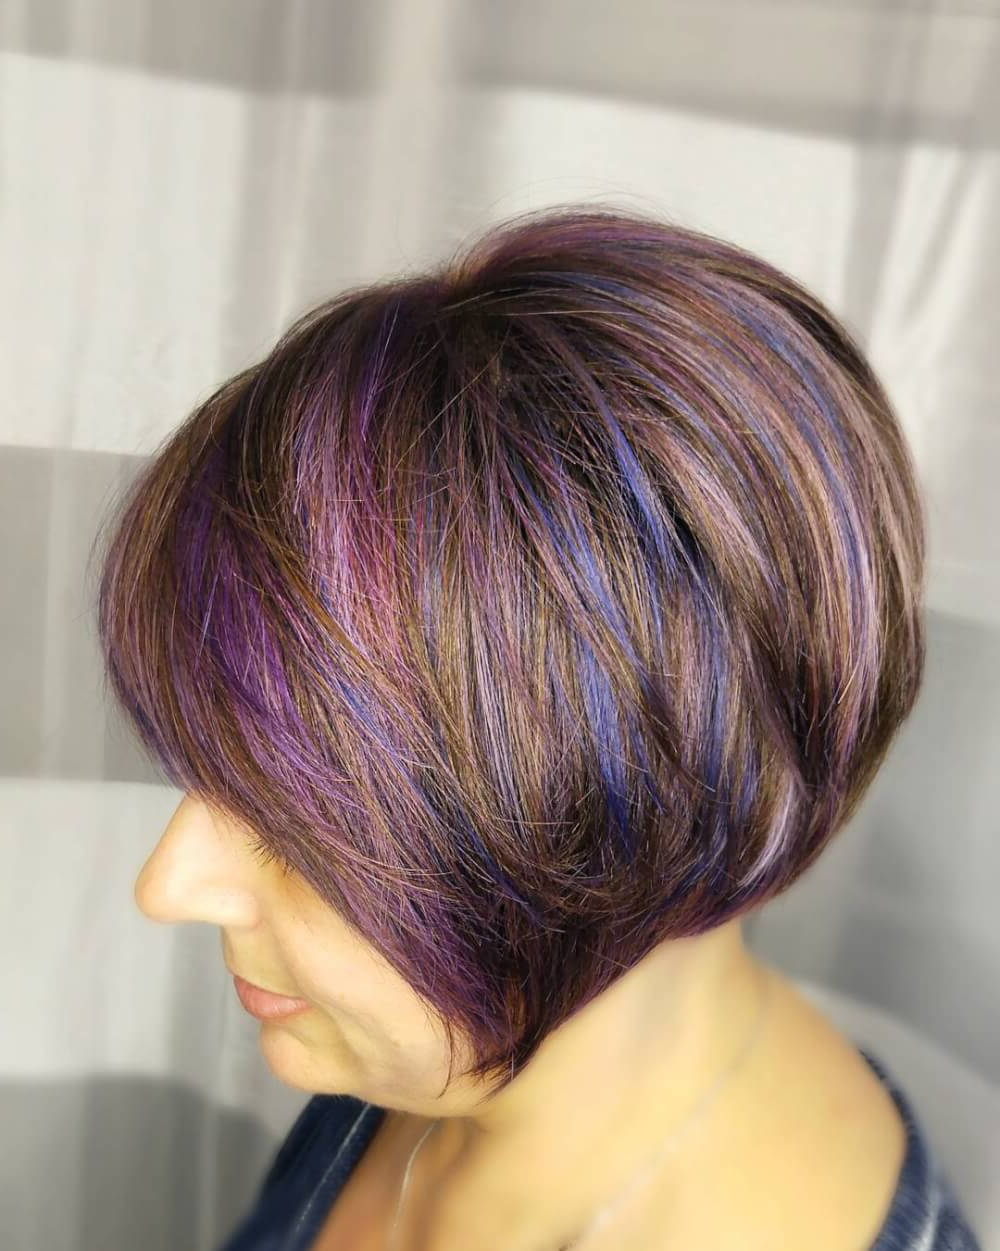 39 Classiest Short Hairstyles For Women Over 50 Of 2018 Throughout Short Haircuts For Women 50 And Over (View 8 of 25)